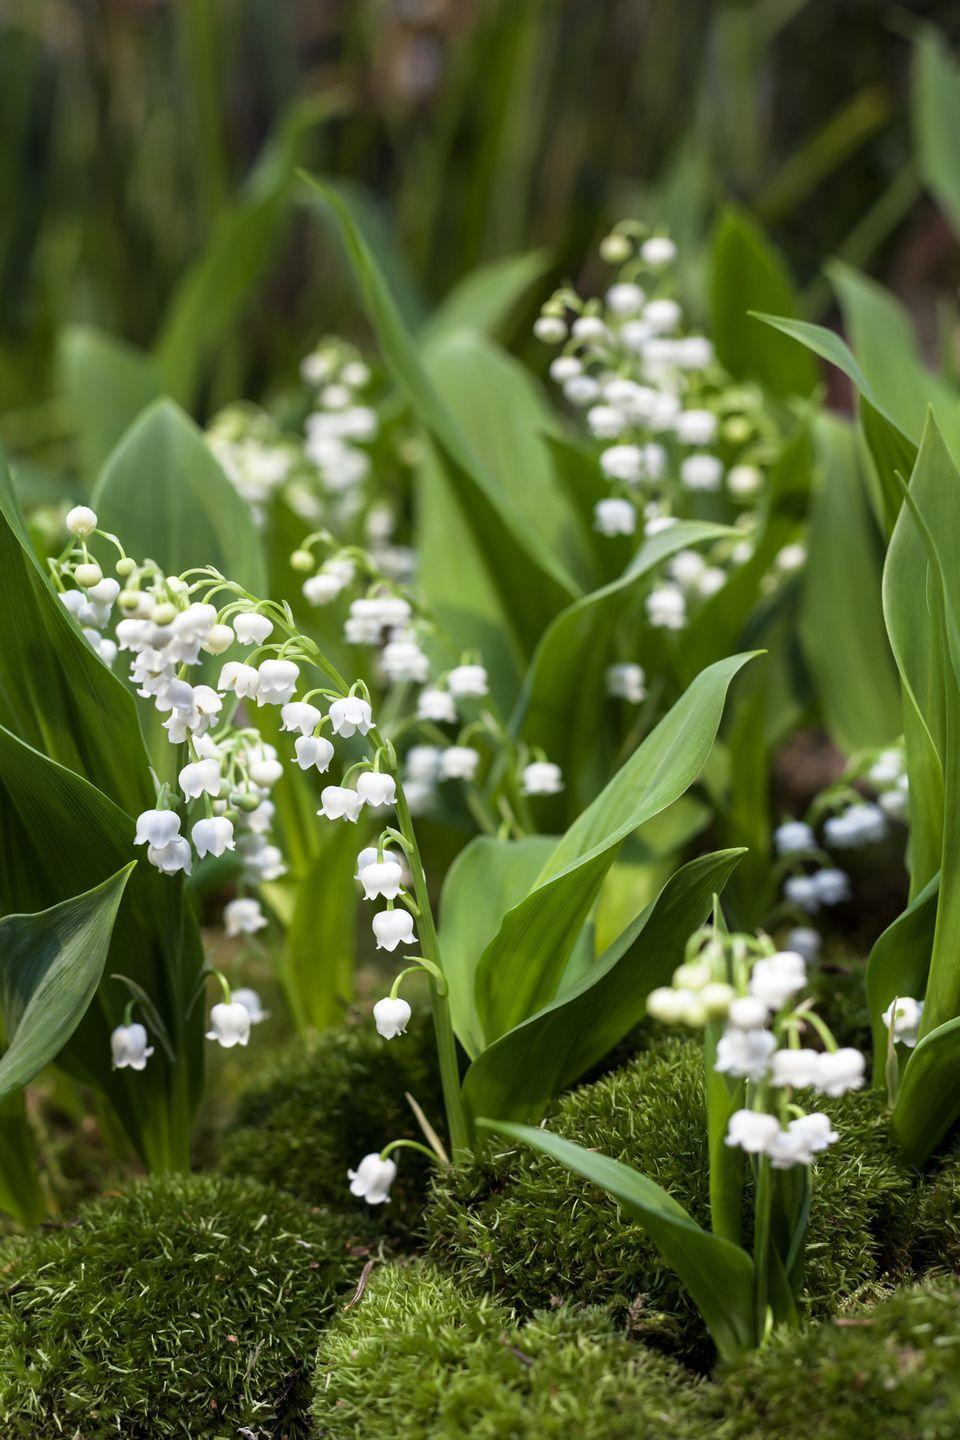 """<p>An old-fashioned perennial that's fallen slightly out of favor because it can become quite aggressive, lily of the valley still is a darling spring bloomer. Its tiny white bells dangle on long stems and have a sweet scent in mid-spring. Plant it where it has room to spread as a ground cover, but not too near other perennials. Give lily of the valley mostly shade.</p><p><a class=""""link rapid-noclick-resp"""" href=""""https://www.springhillnursery.com/product/lily-of-the-valley-nosegay"""" rel=""""nofollow noopener"""" target=""""_blank"""" data-ylk=""""slk:SHOP LILY OF THE VALLEY"""">SHOP LILY OF THE VALLEY </a></p>"""